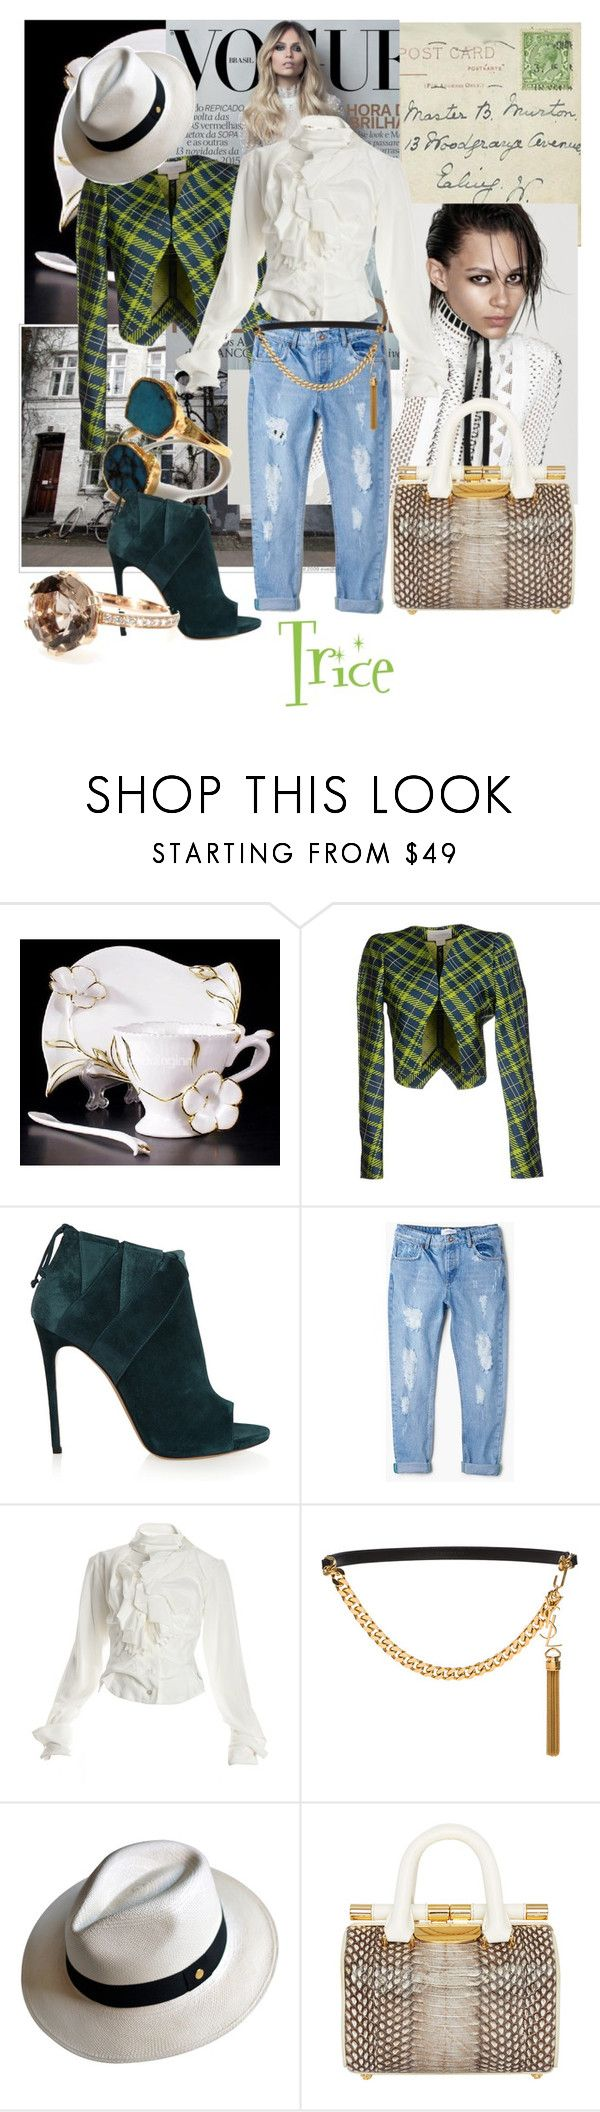 """Their will be time.~~7⃣👊"" by tricewillbe ❤ liked on Polyvore featuring Antonio Berardi, Casadei, MANGO, Vivienne Westwood, Yves Saint Laurent, Cuyana, Tyler Alexandra and Cada"